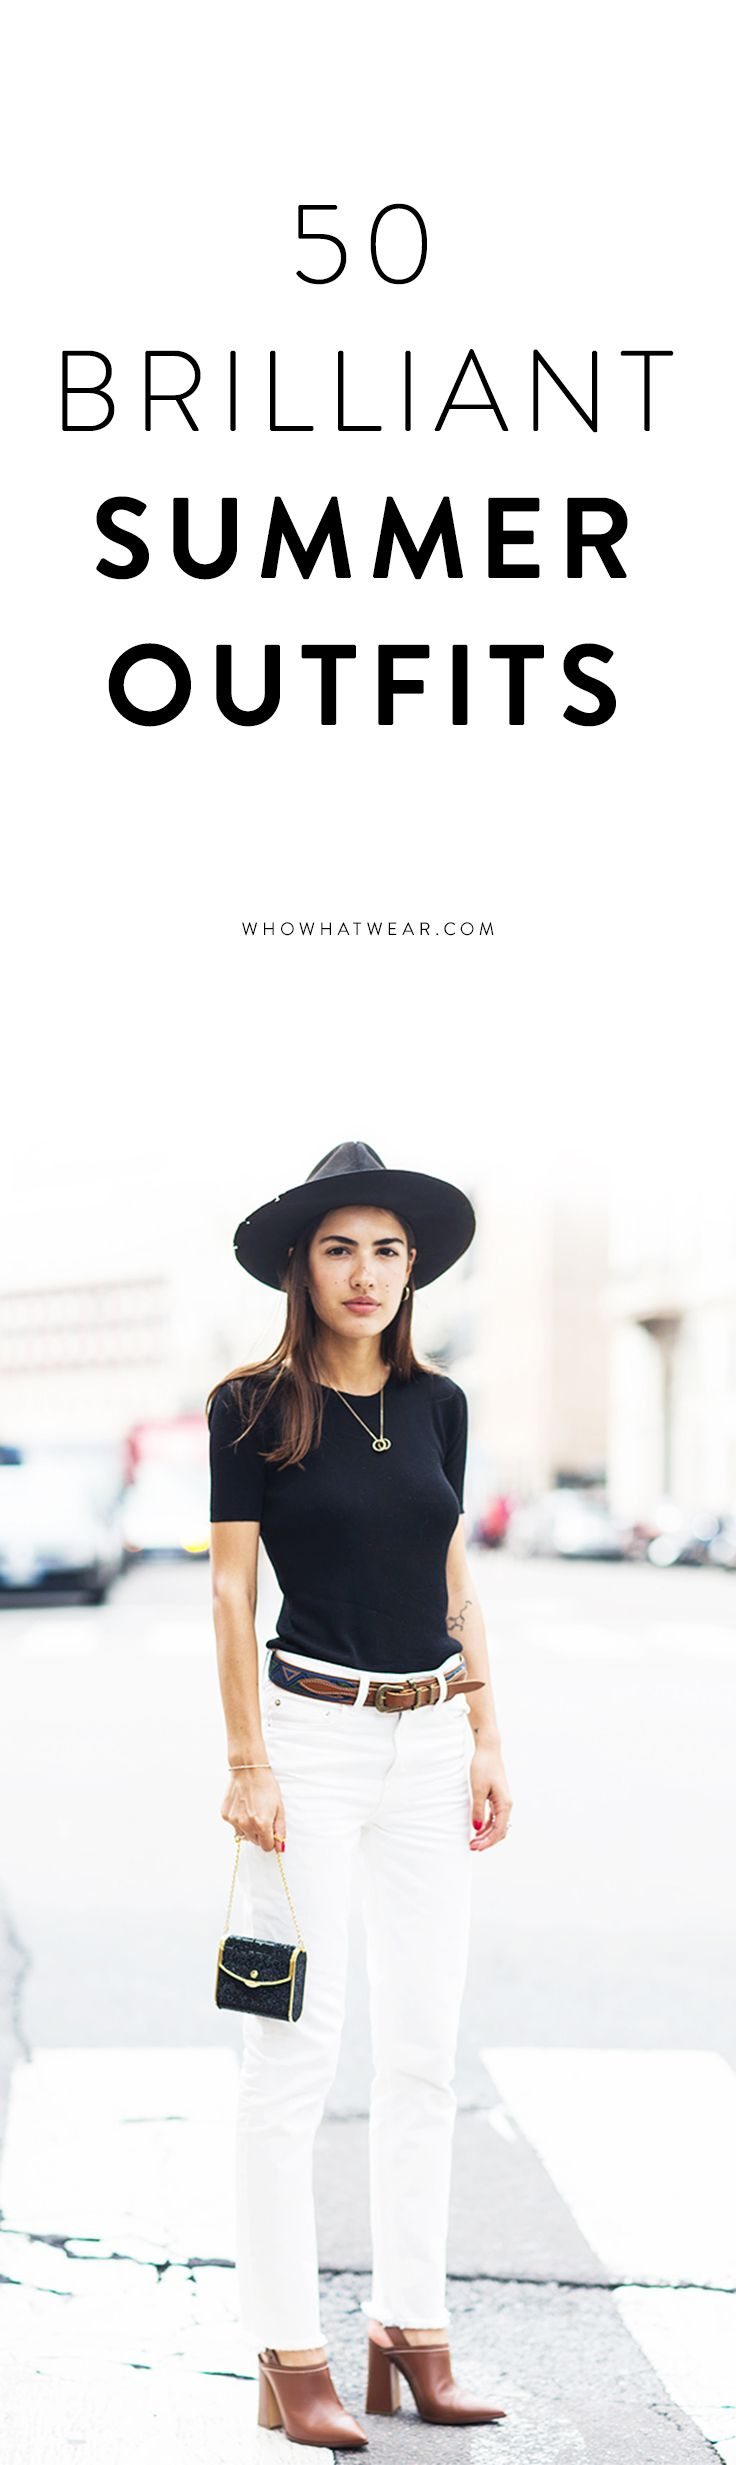 End-of-summer street style looks to try